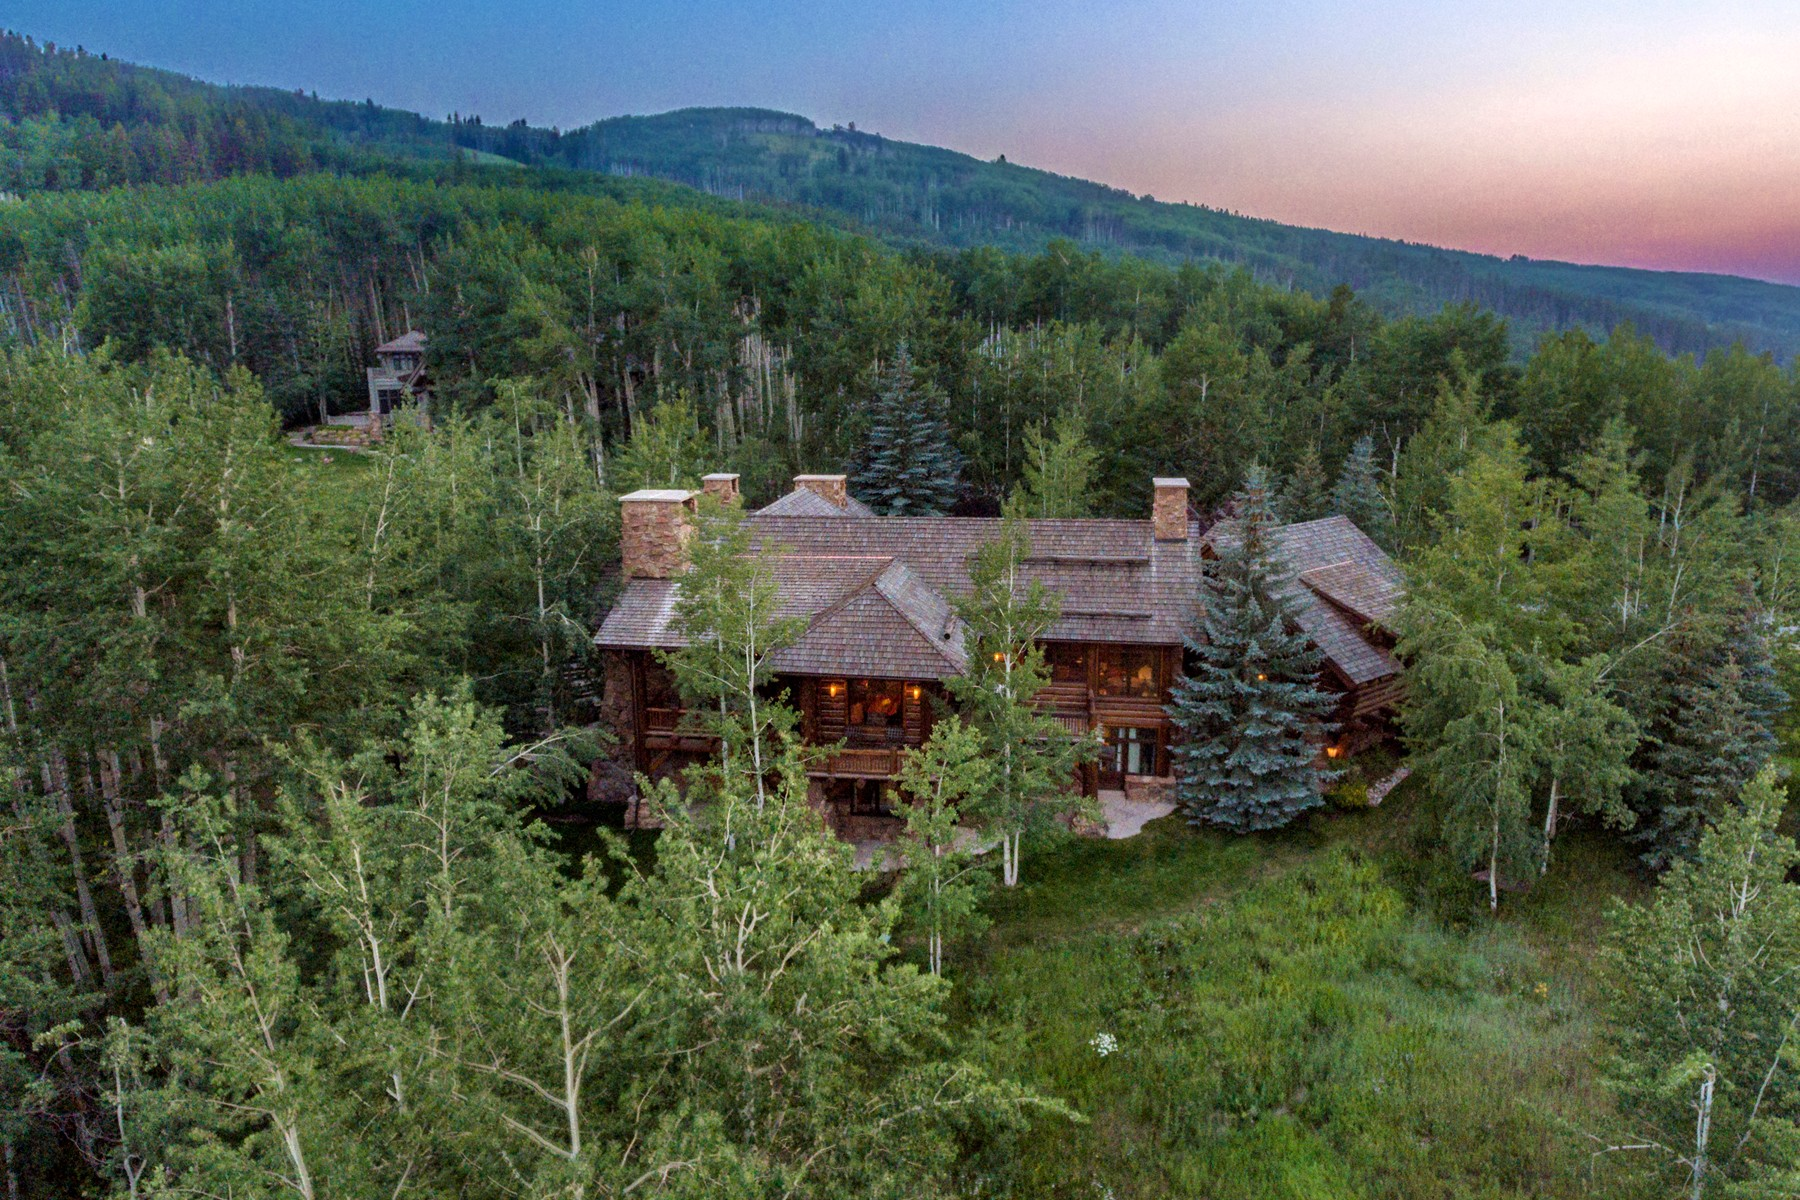 Property for Active at Private Ski-in/Ski-out 6-bedroom/6.5-bath Custom Log Home 2291 Daybreak Ridge Beaver Creek, Colorado 81620 United States